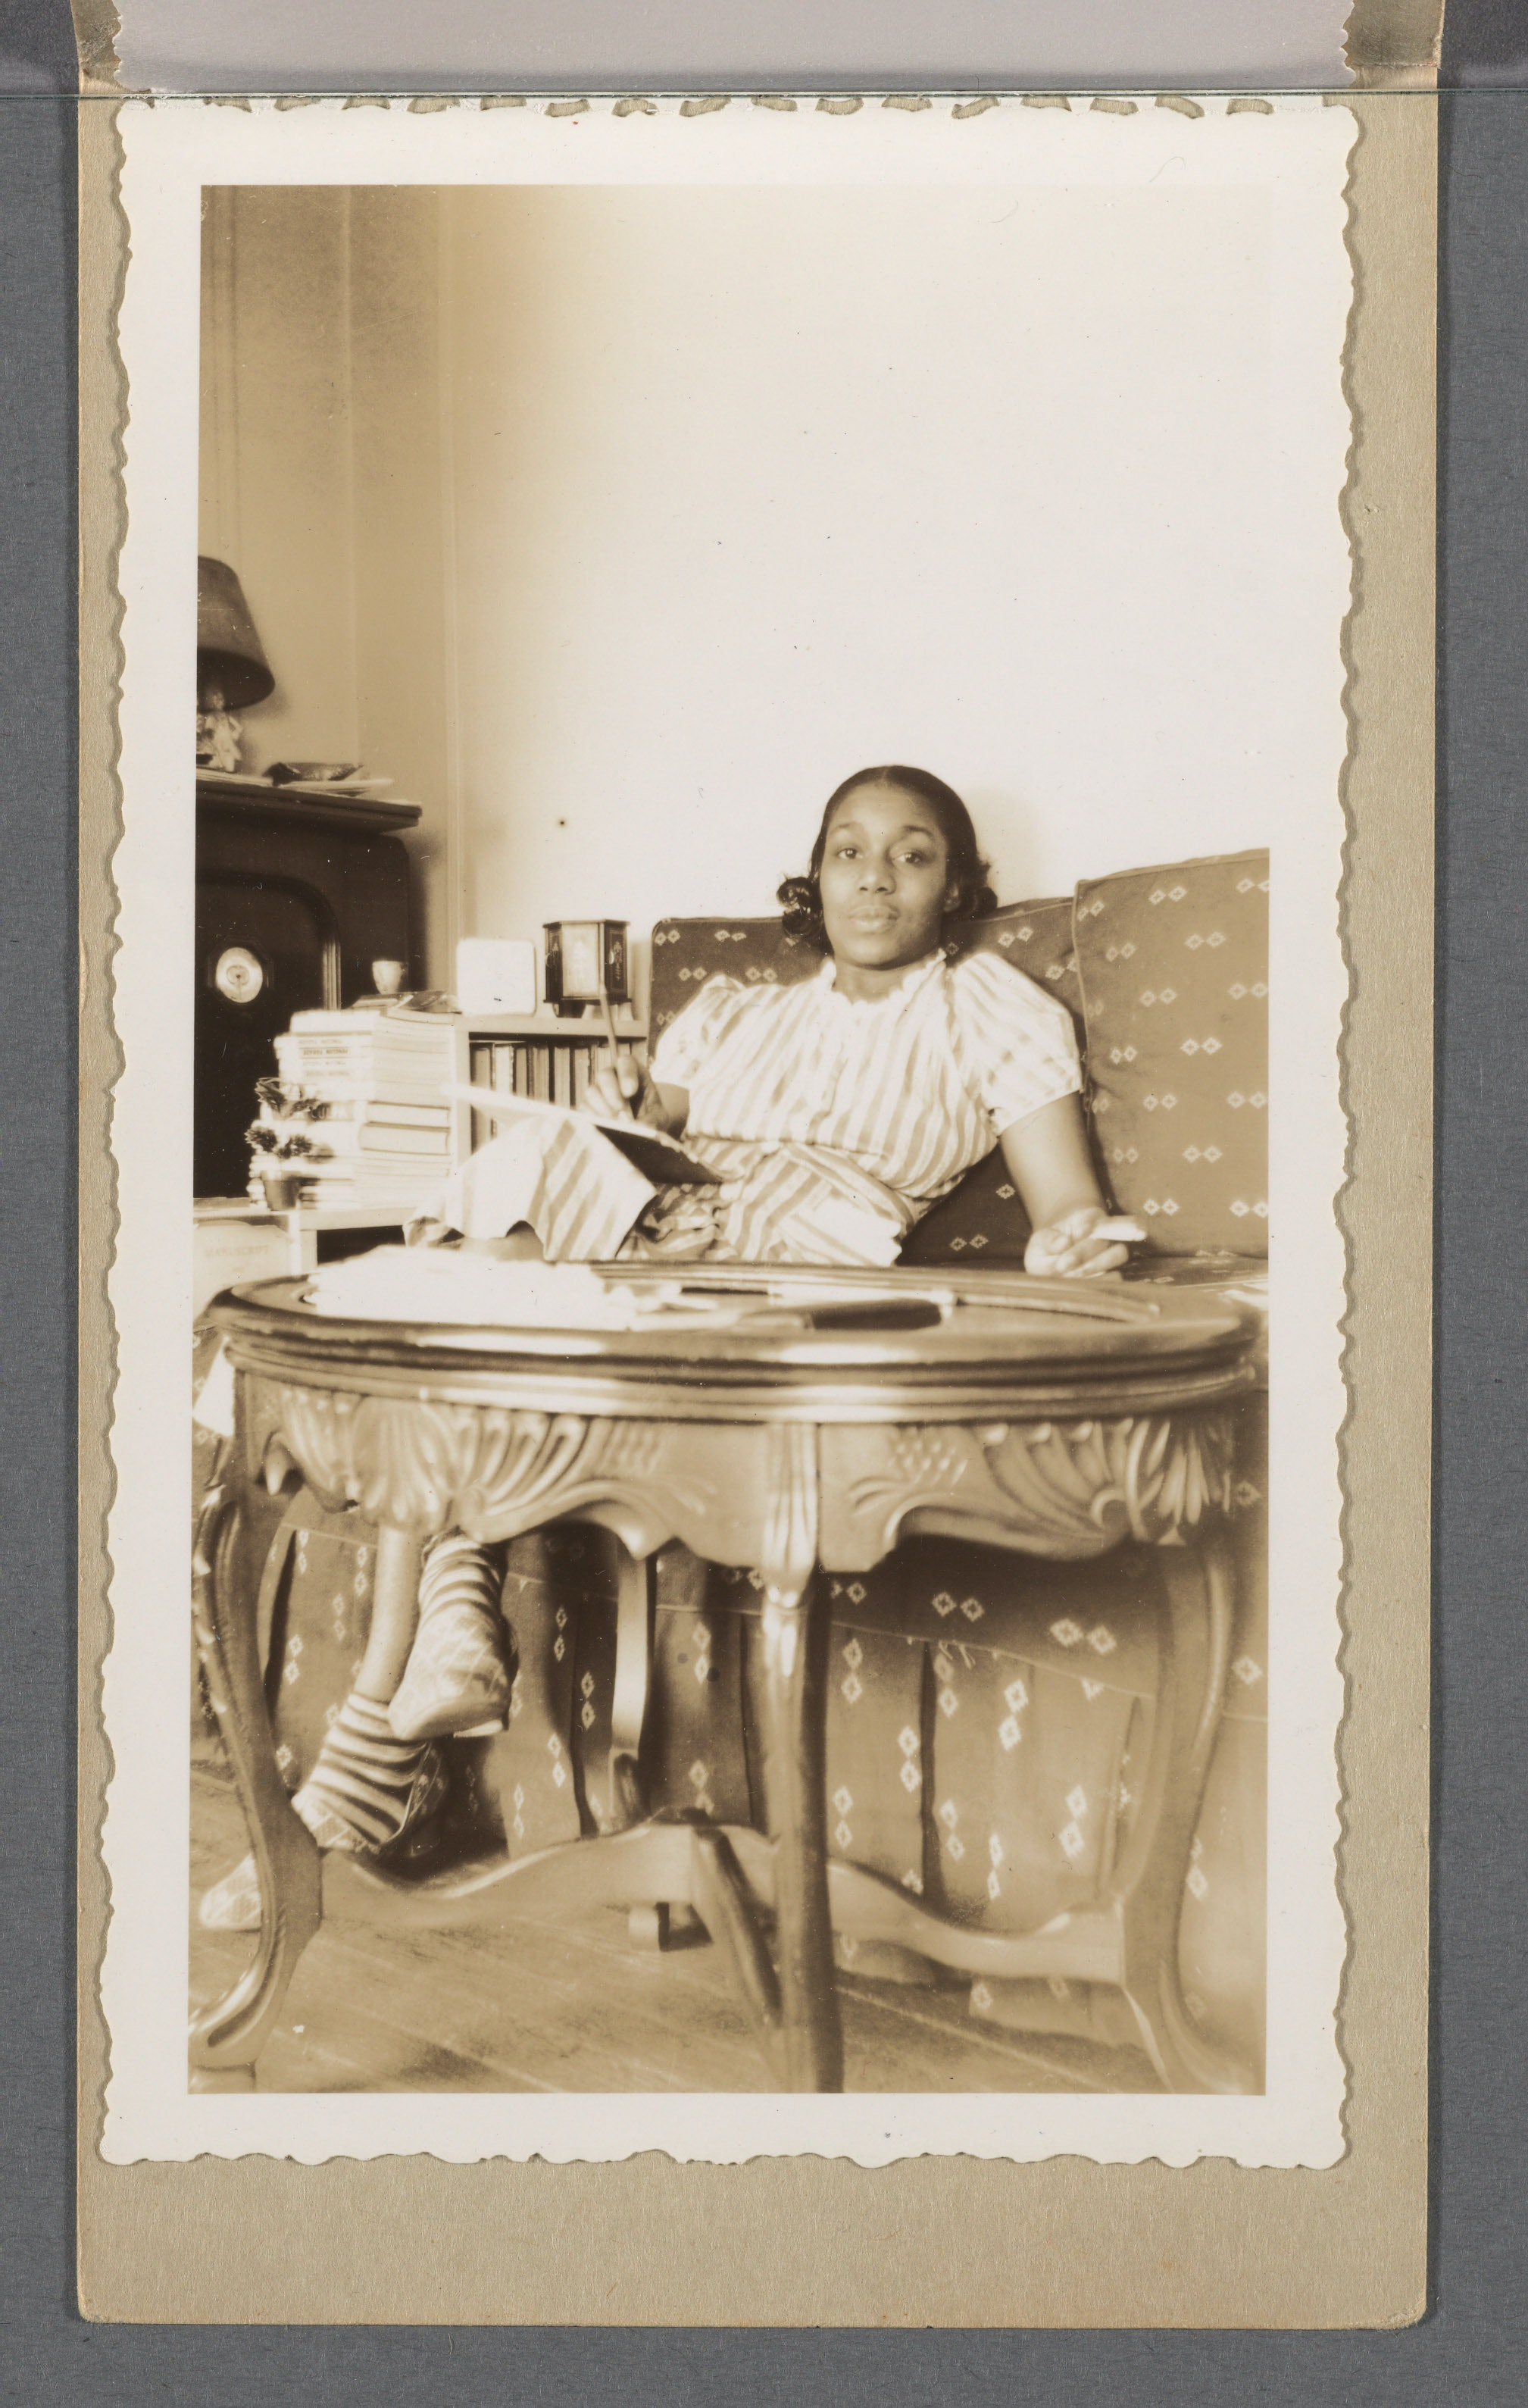 Dorothy West in her New York City apartment. West is seated on a couch, holding a pad of paper on her lap